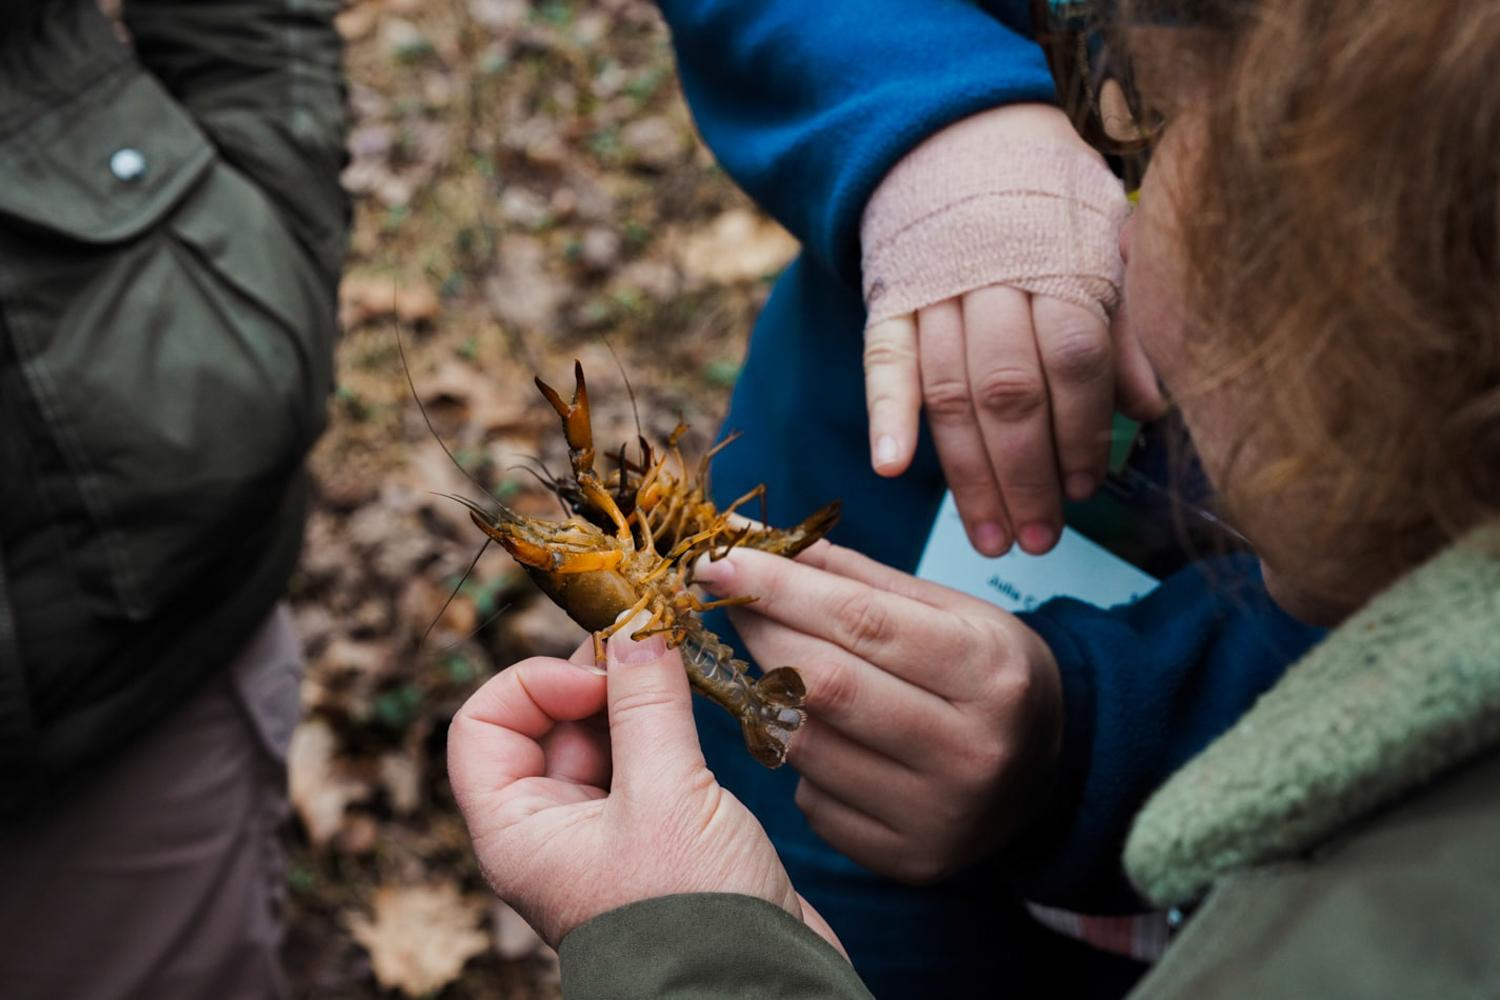 The VAEE group receives the opportunity to hold one of the crawfish that are native to the vernal pools at Sweet Briar, 2020.